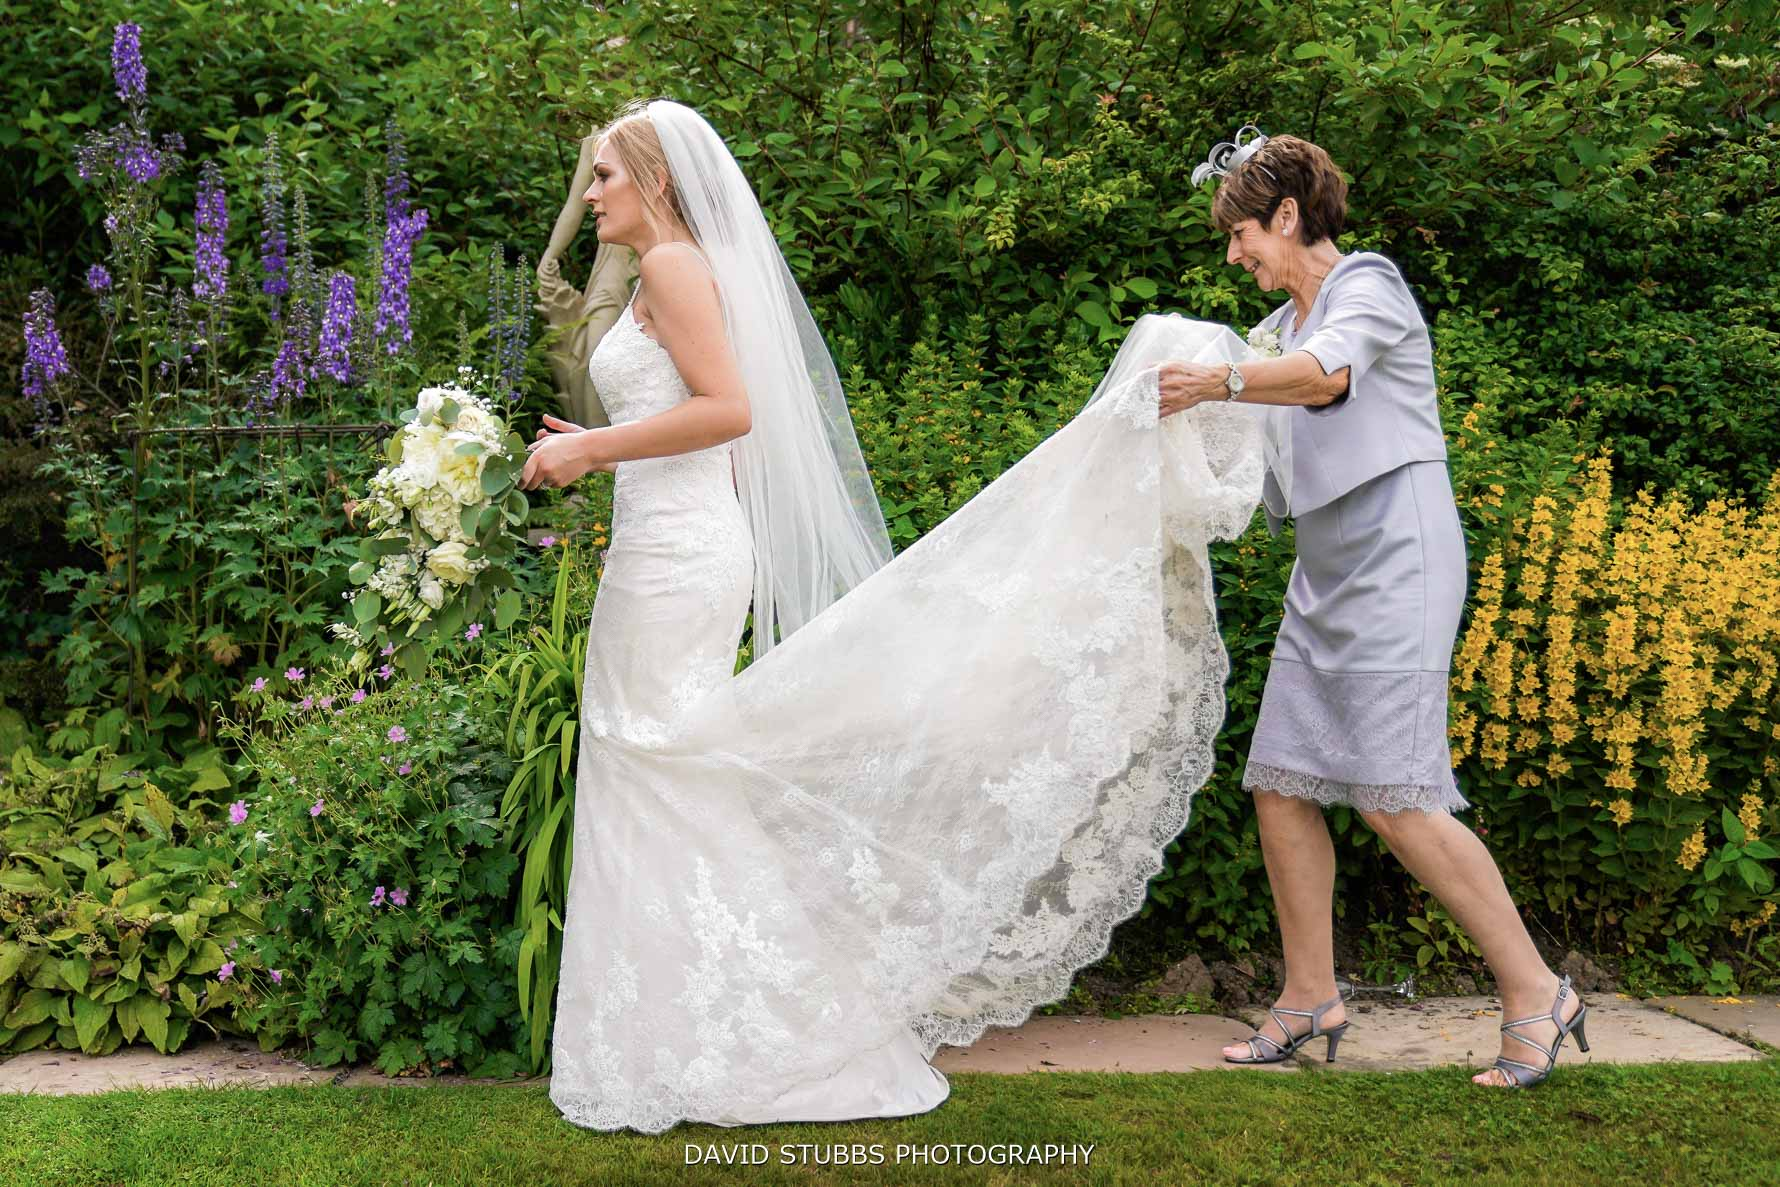 carrying the wedding dress